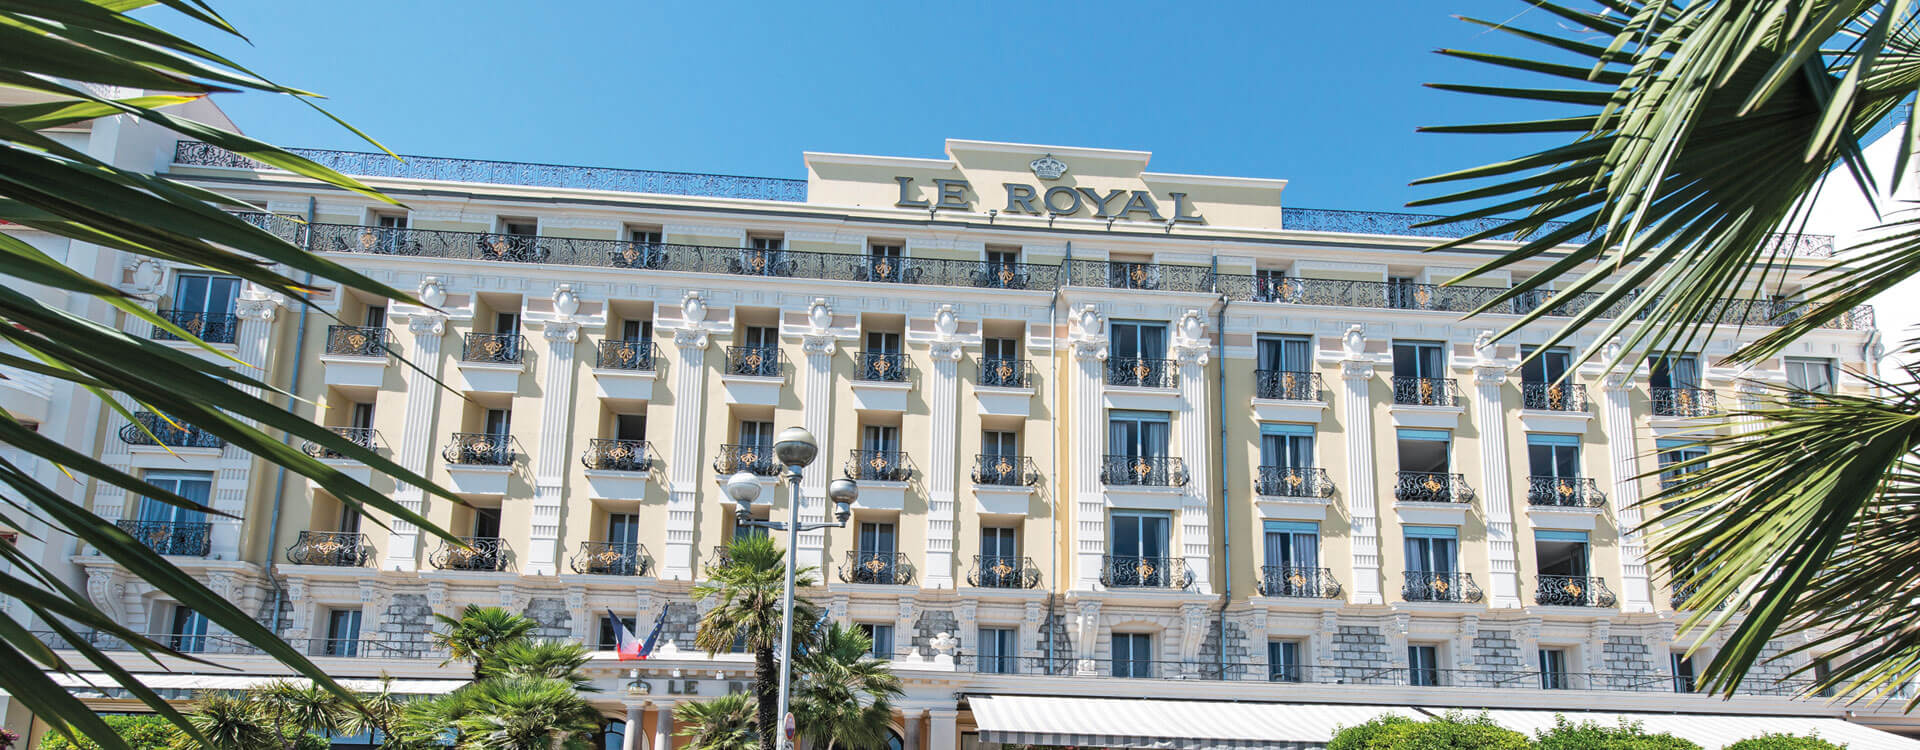 Hôtel*** Le Royal à Nice